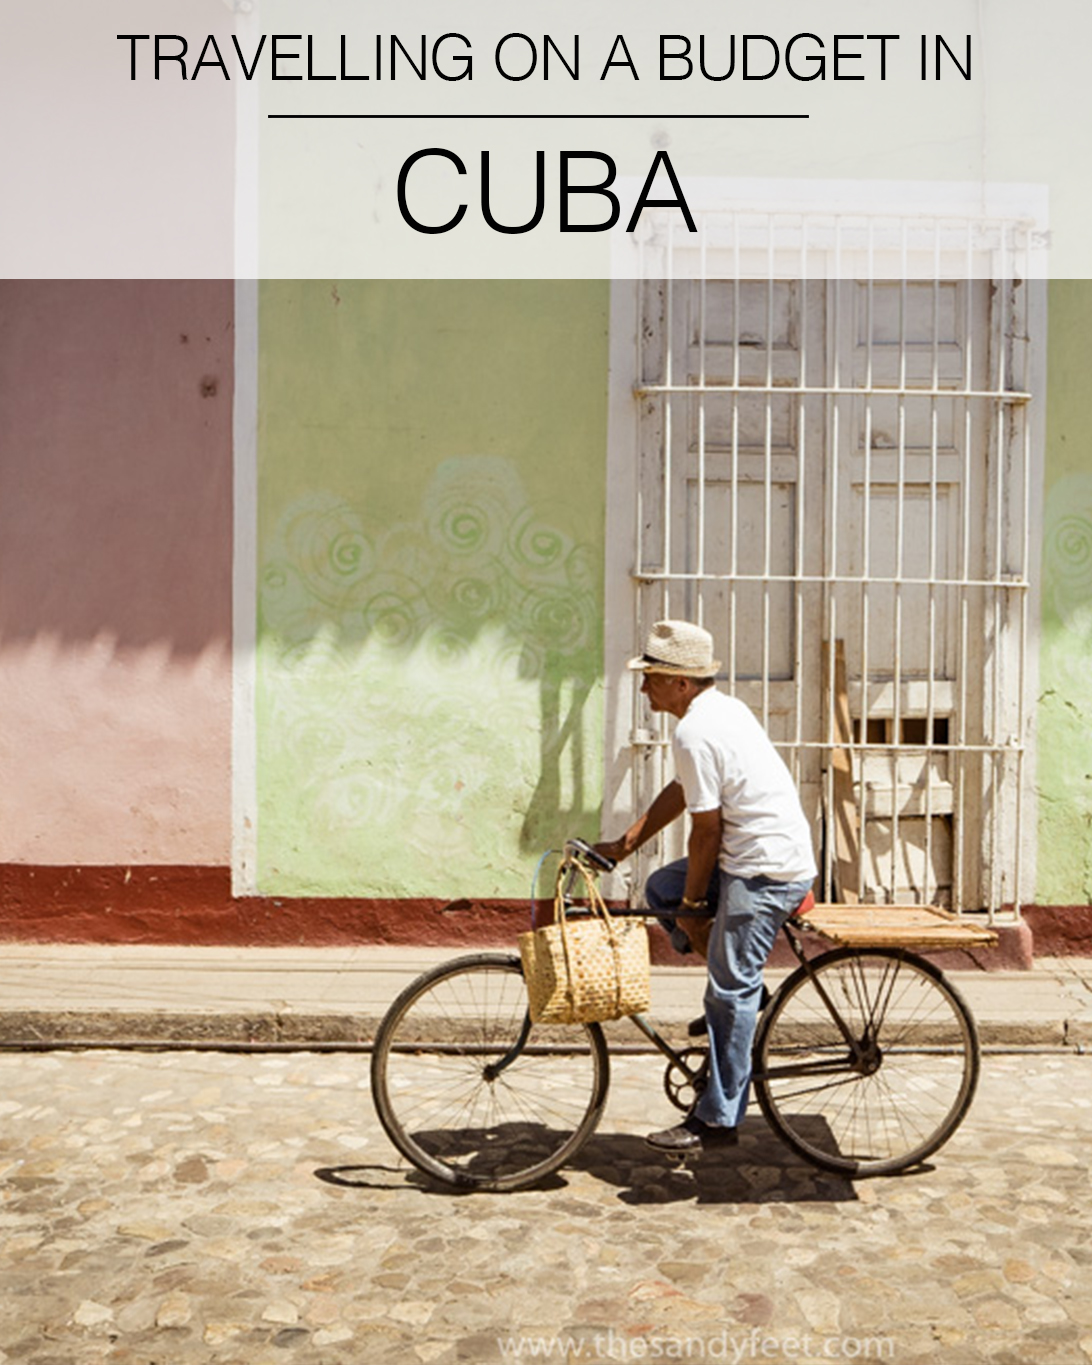 Tips for Travelling on a Budget in Cuba